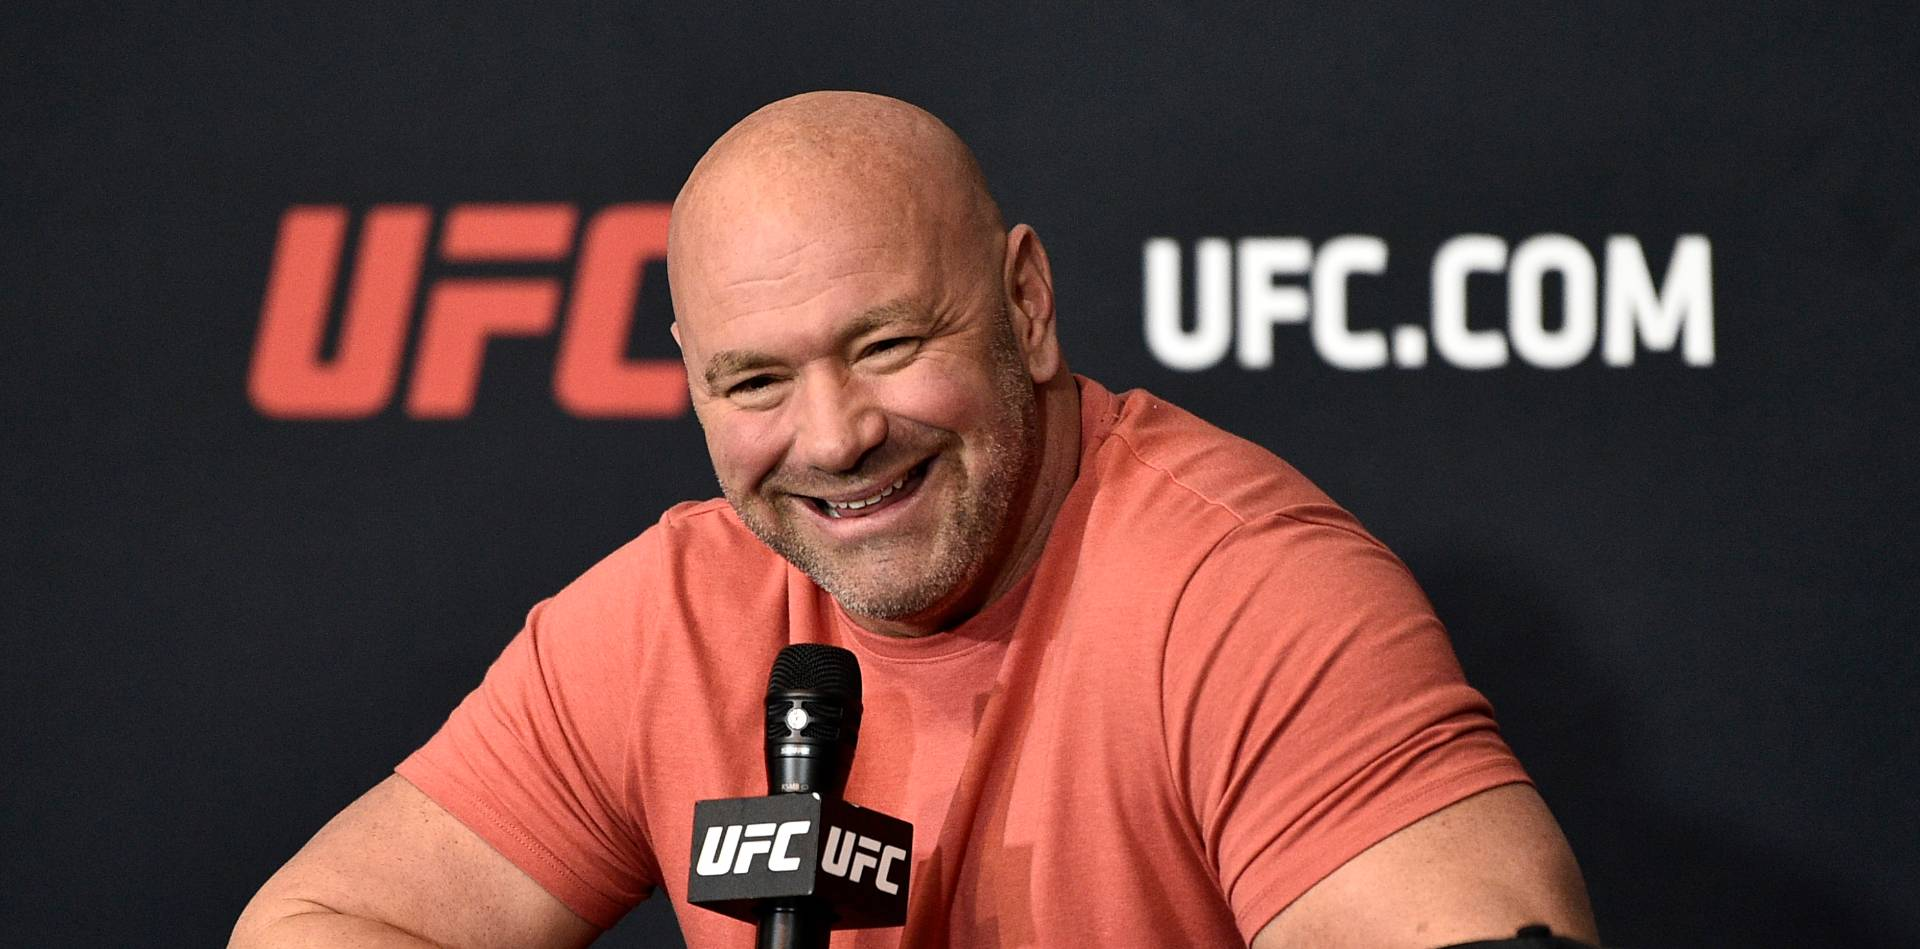 UFC brings another fight night to PA bettors